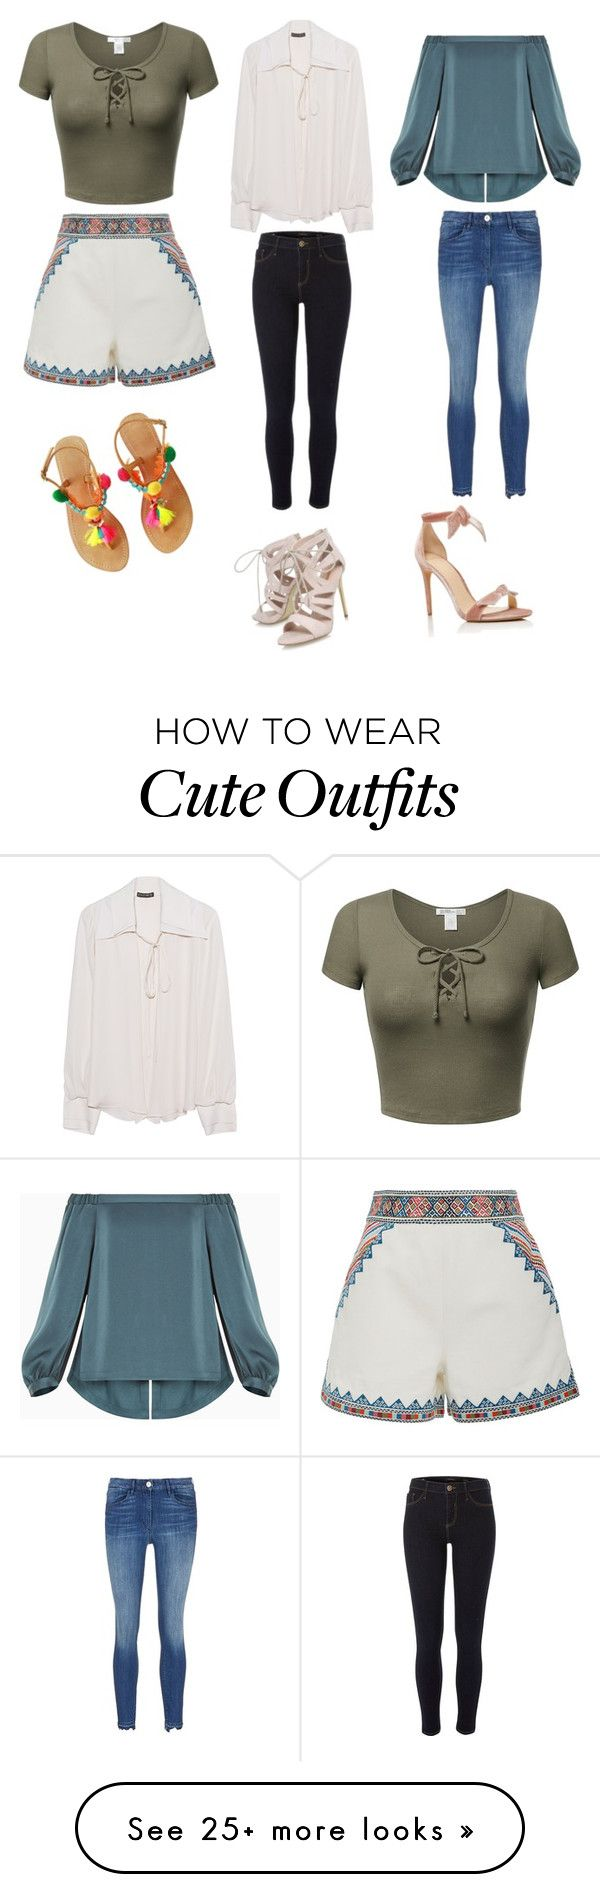 """Cute Casual Outfits "" by lsantana13 on Polyvore featuring Plein Sud, BCBGMAXAZRIA, River Island, Talitha, Alexandre Birman and Carvela"